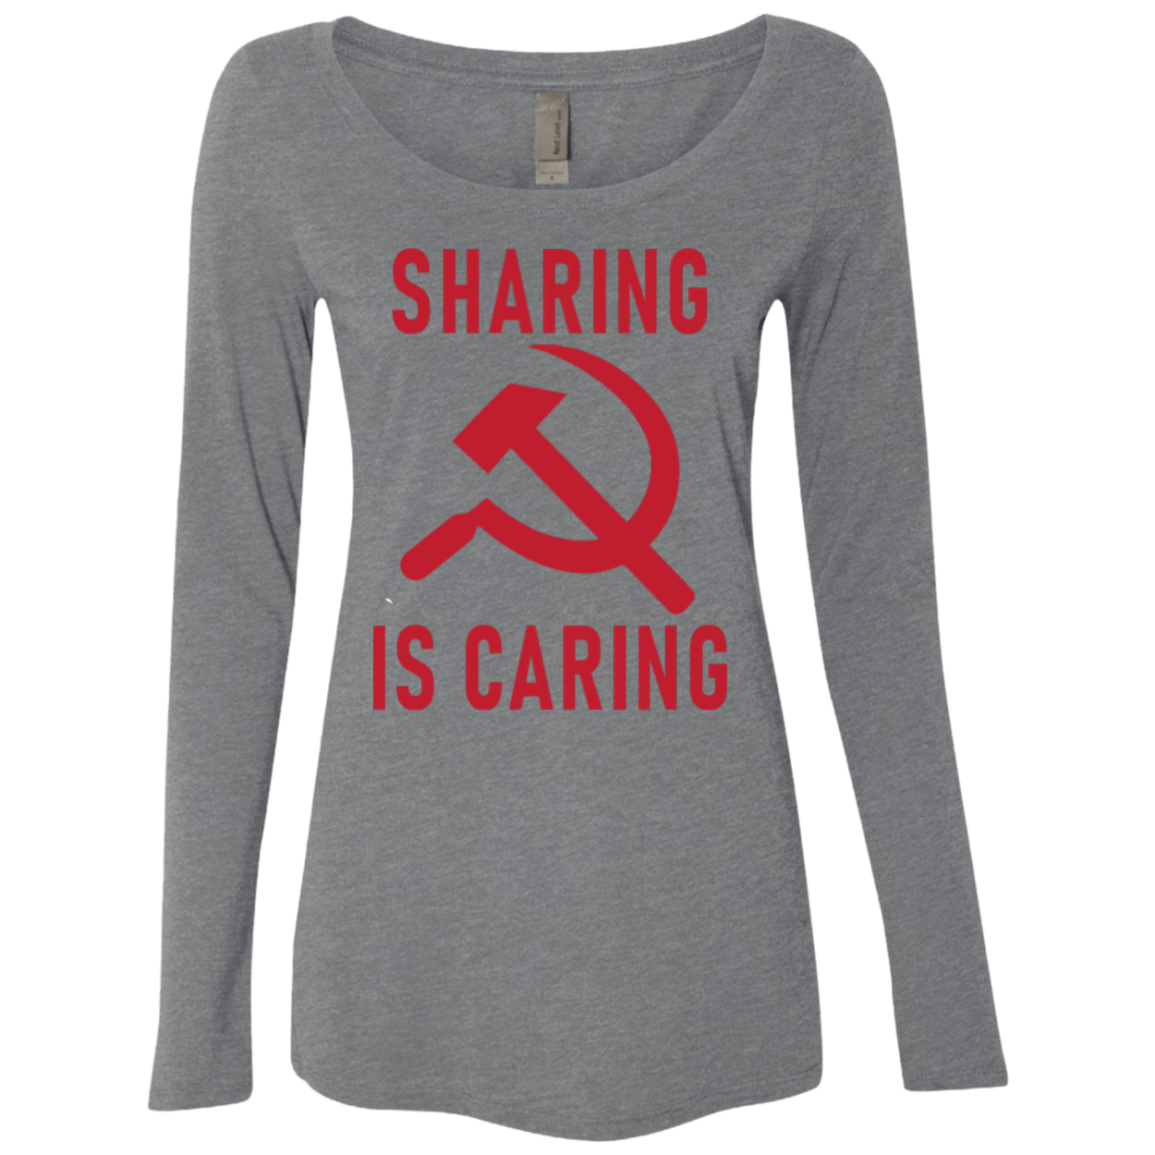 Sharing Is Caring Women's Long Sleeve Tee